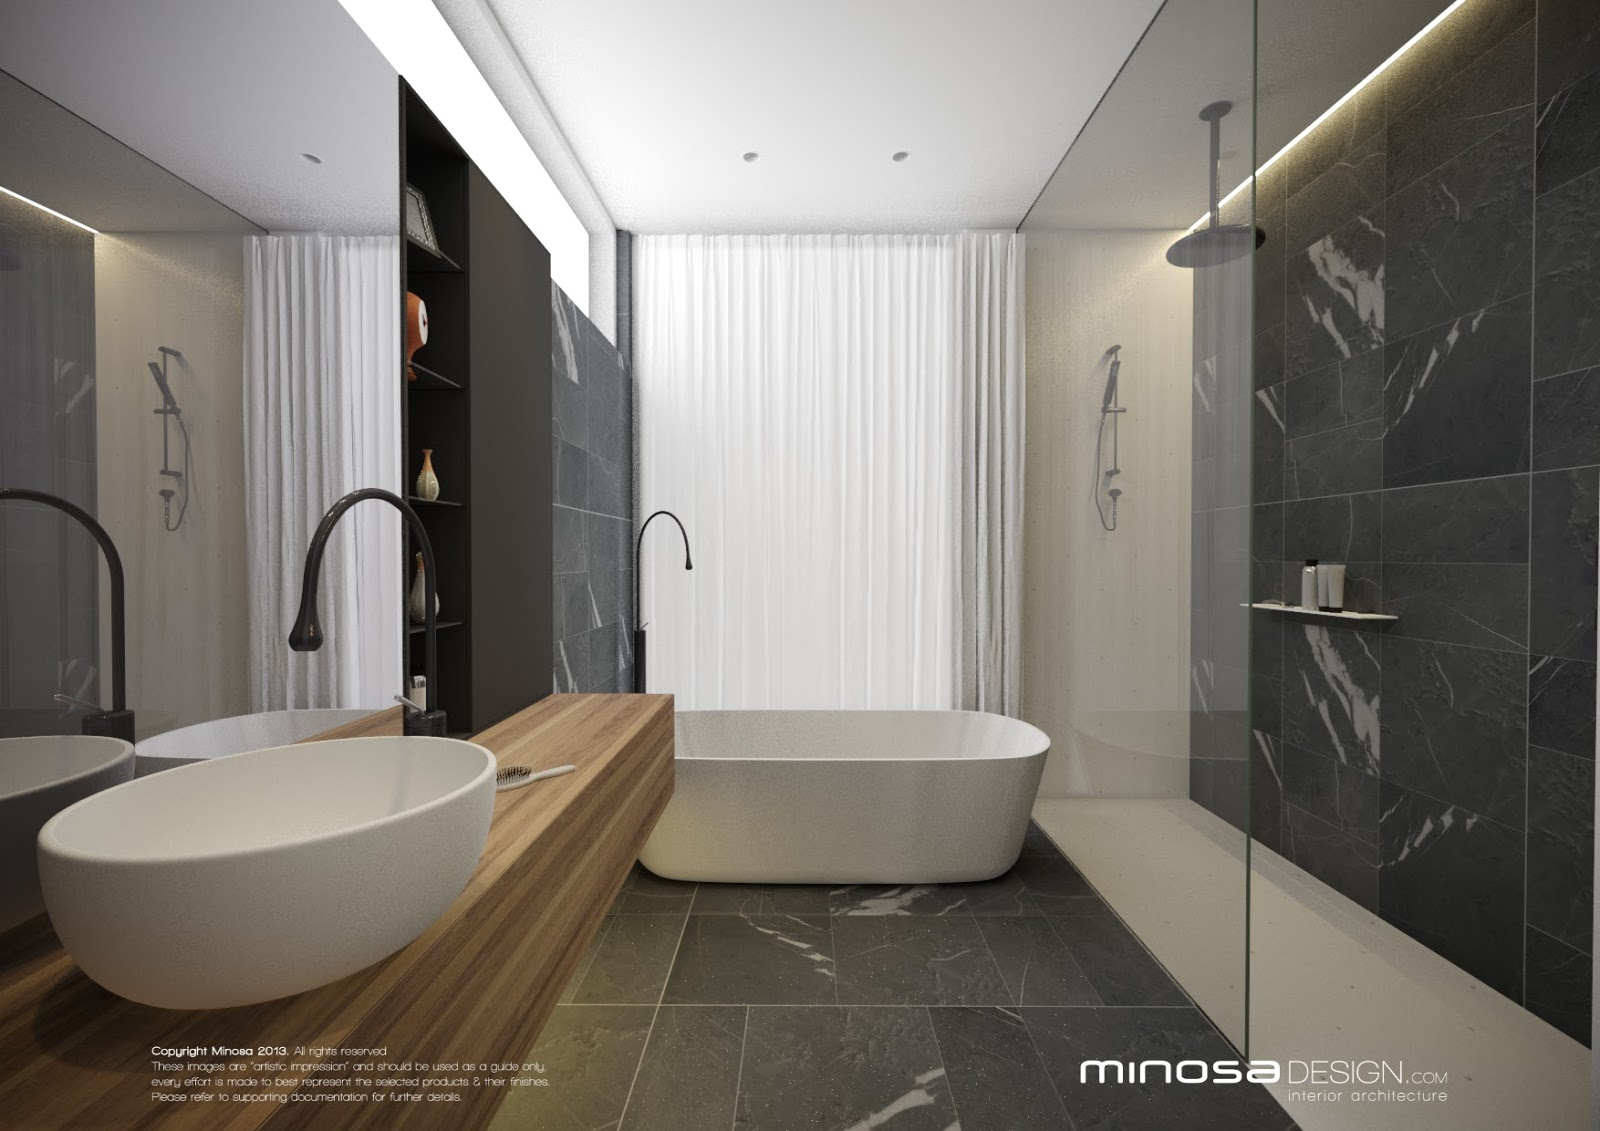 Minosa modern bathroom design to share for Bathroom designs melbourne